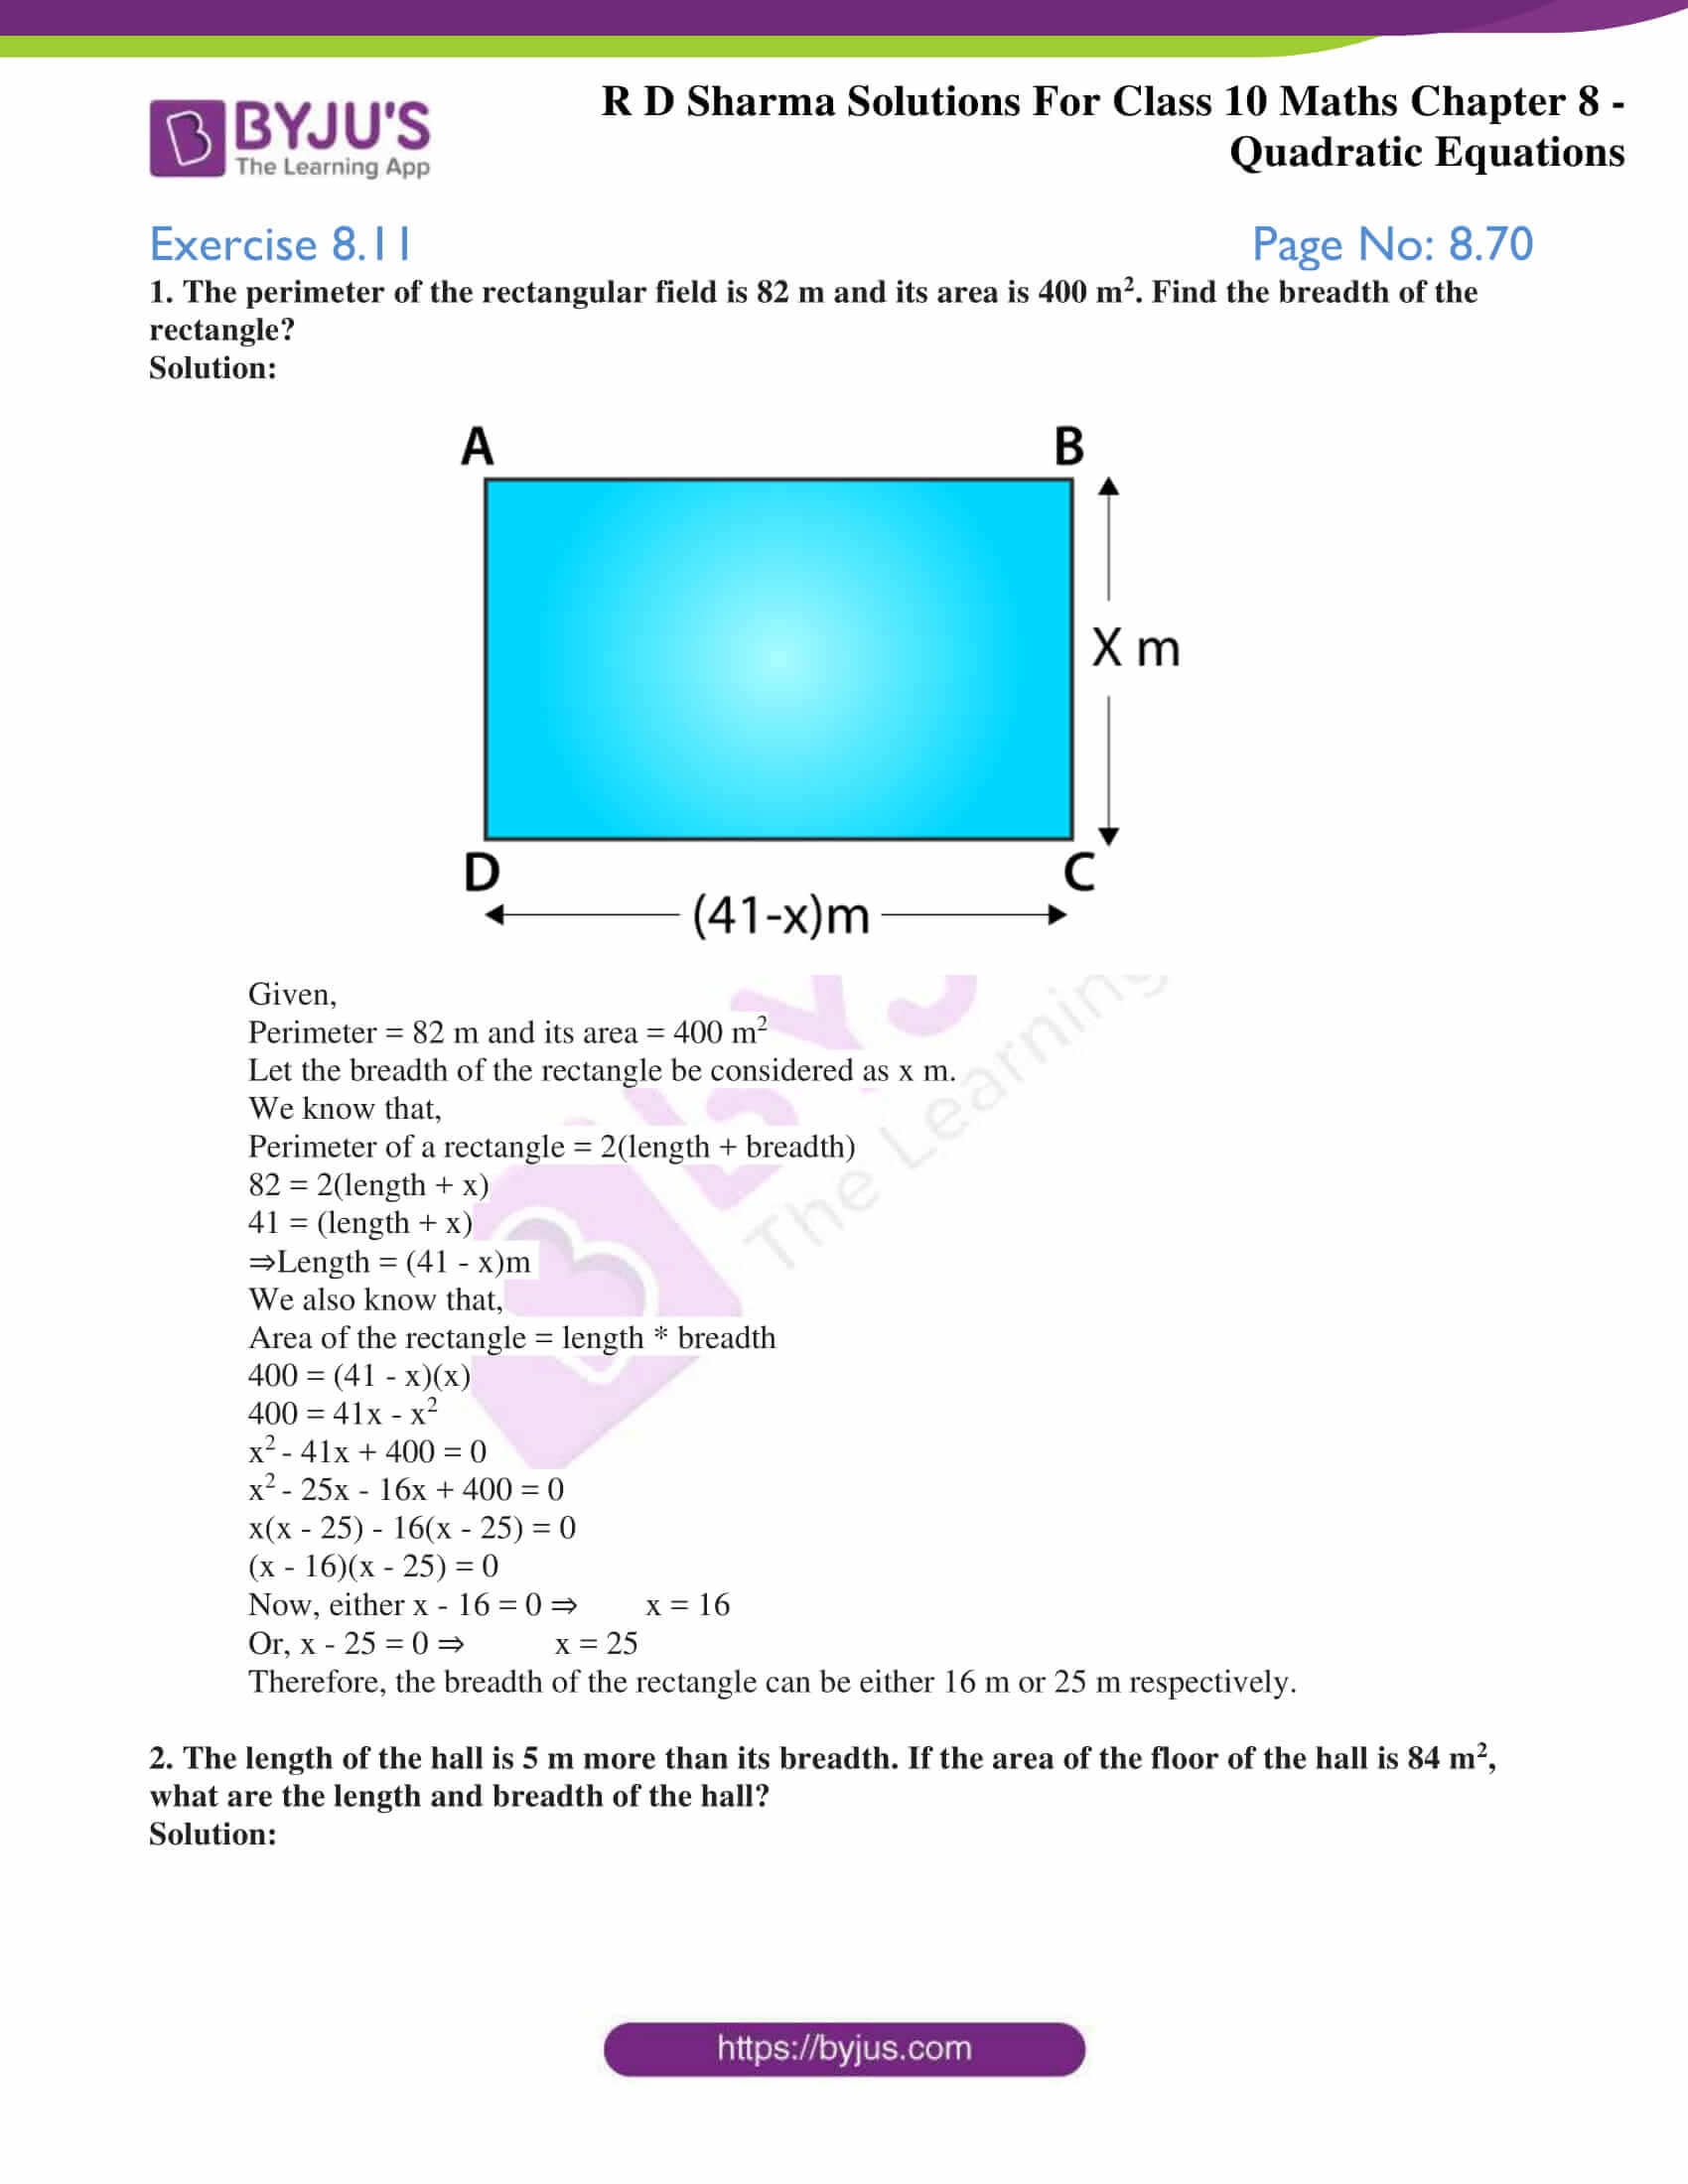 RD Sharma Solutions for Class 10 Chapter 8 Quadratic Equations 66